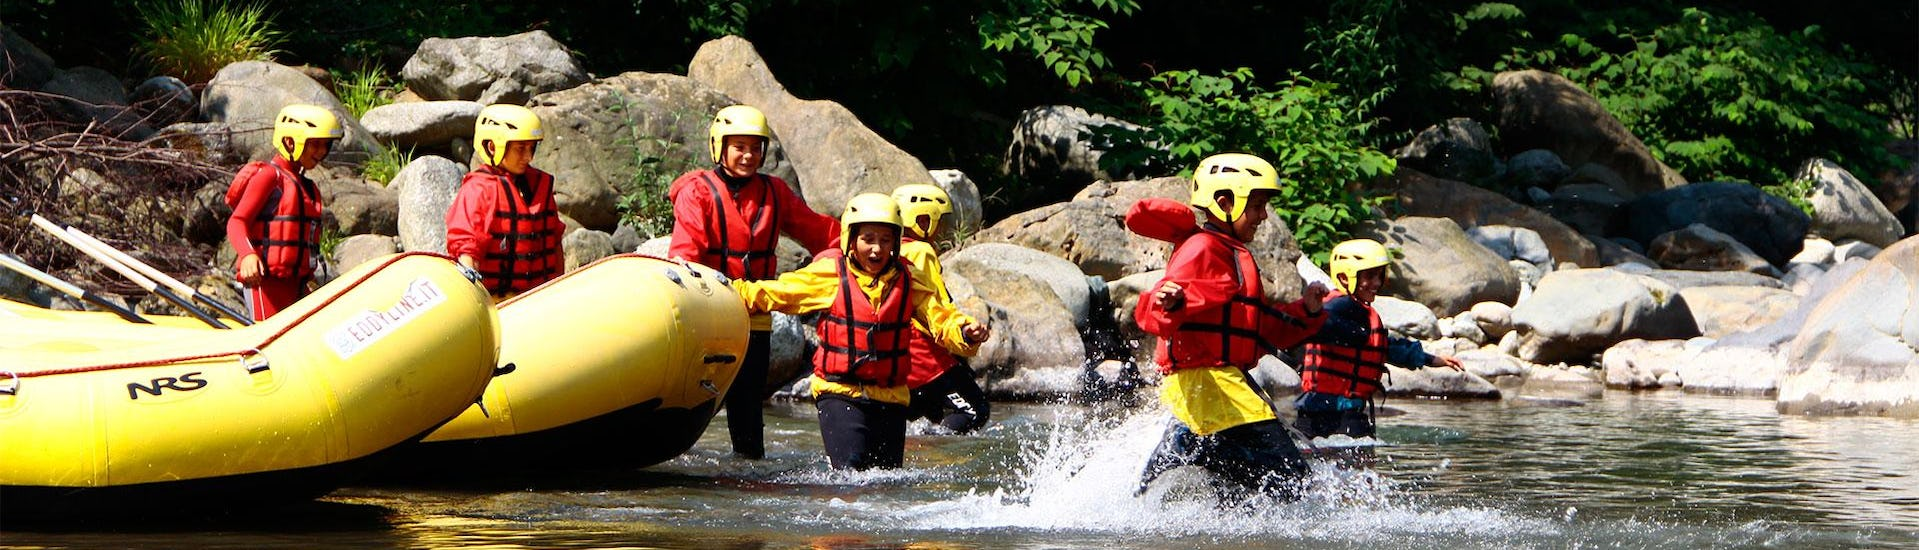 rafting-on-the-sesia-for-families-eddyline-hero